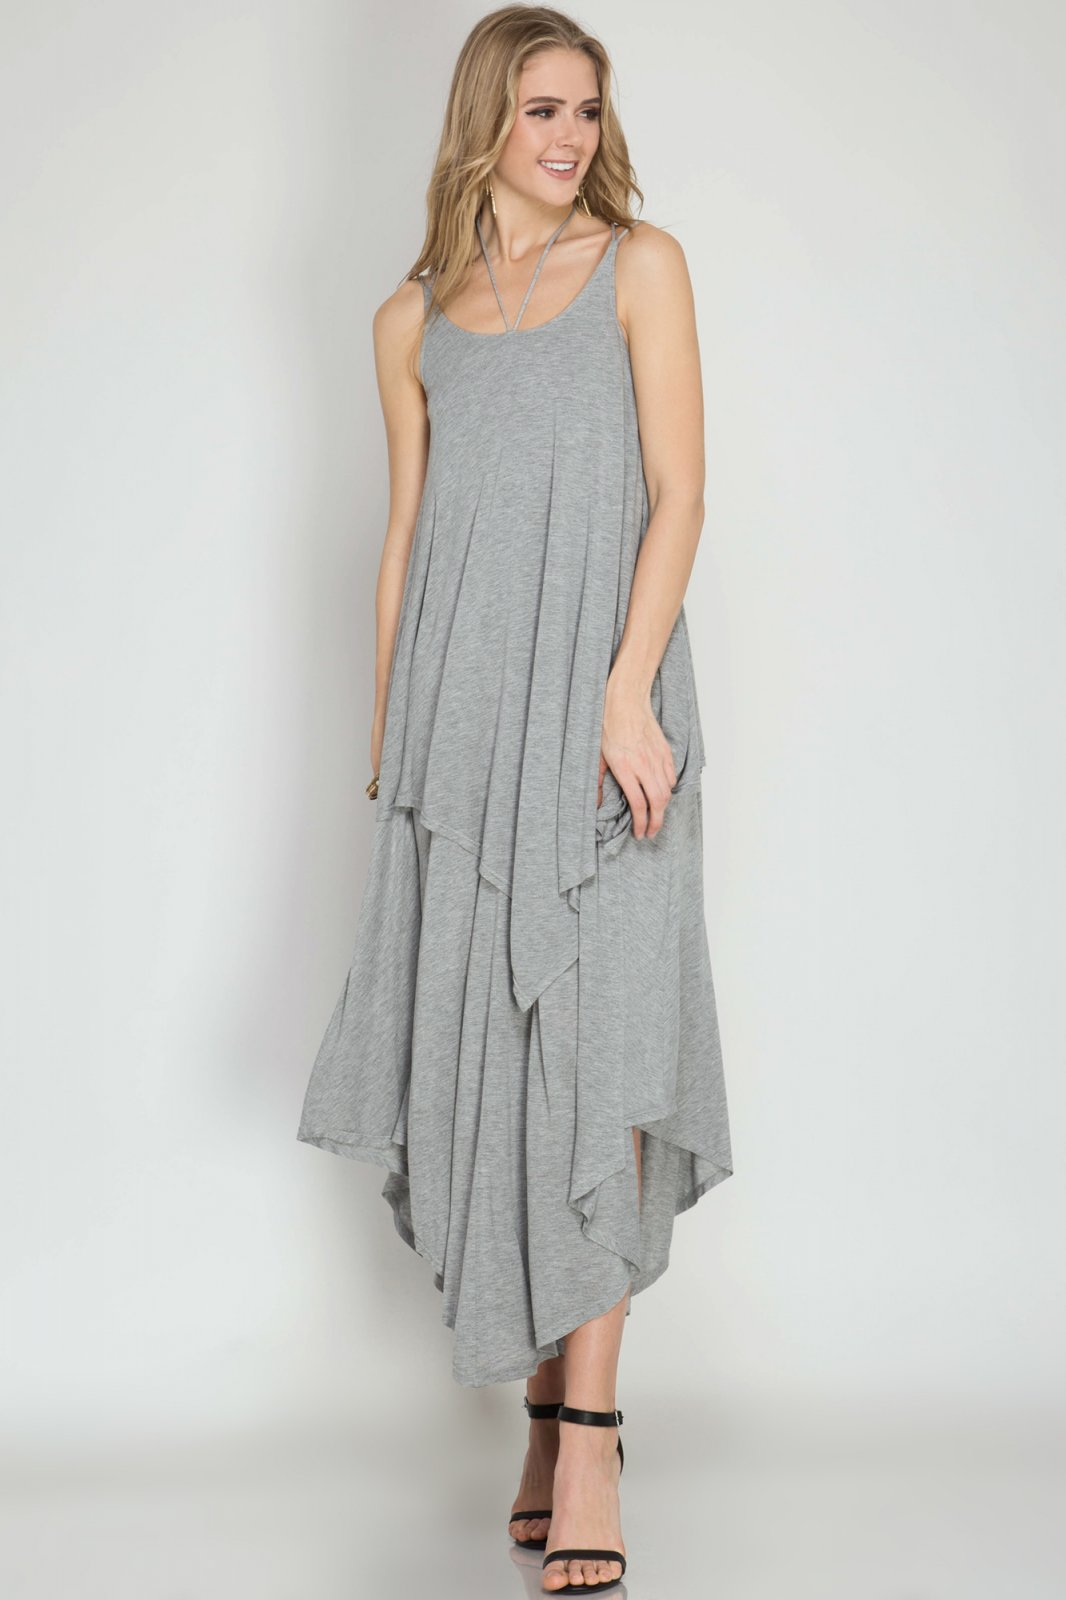 DRESS Maxi Knit Dress GREY * RAYON